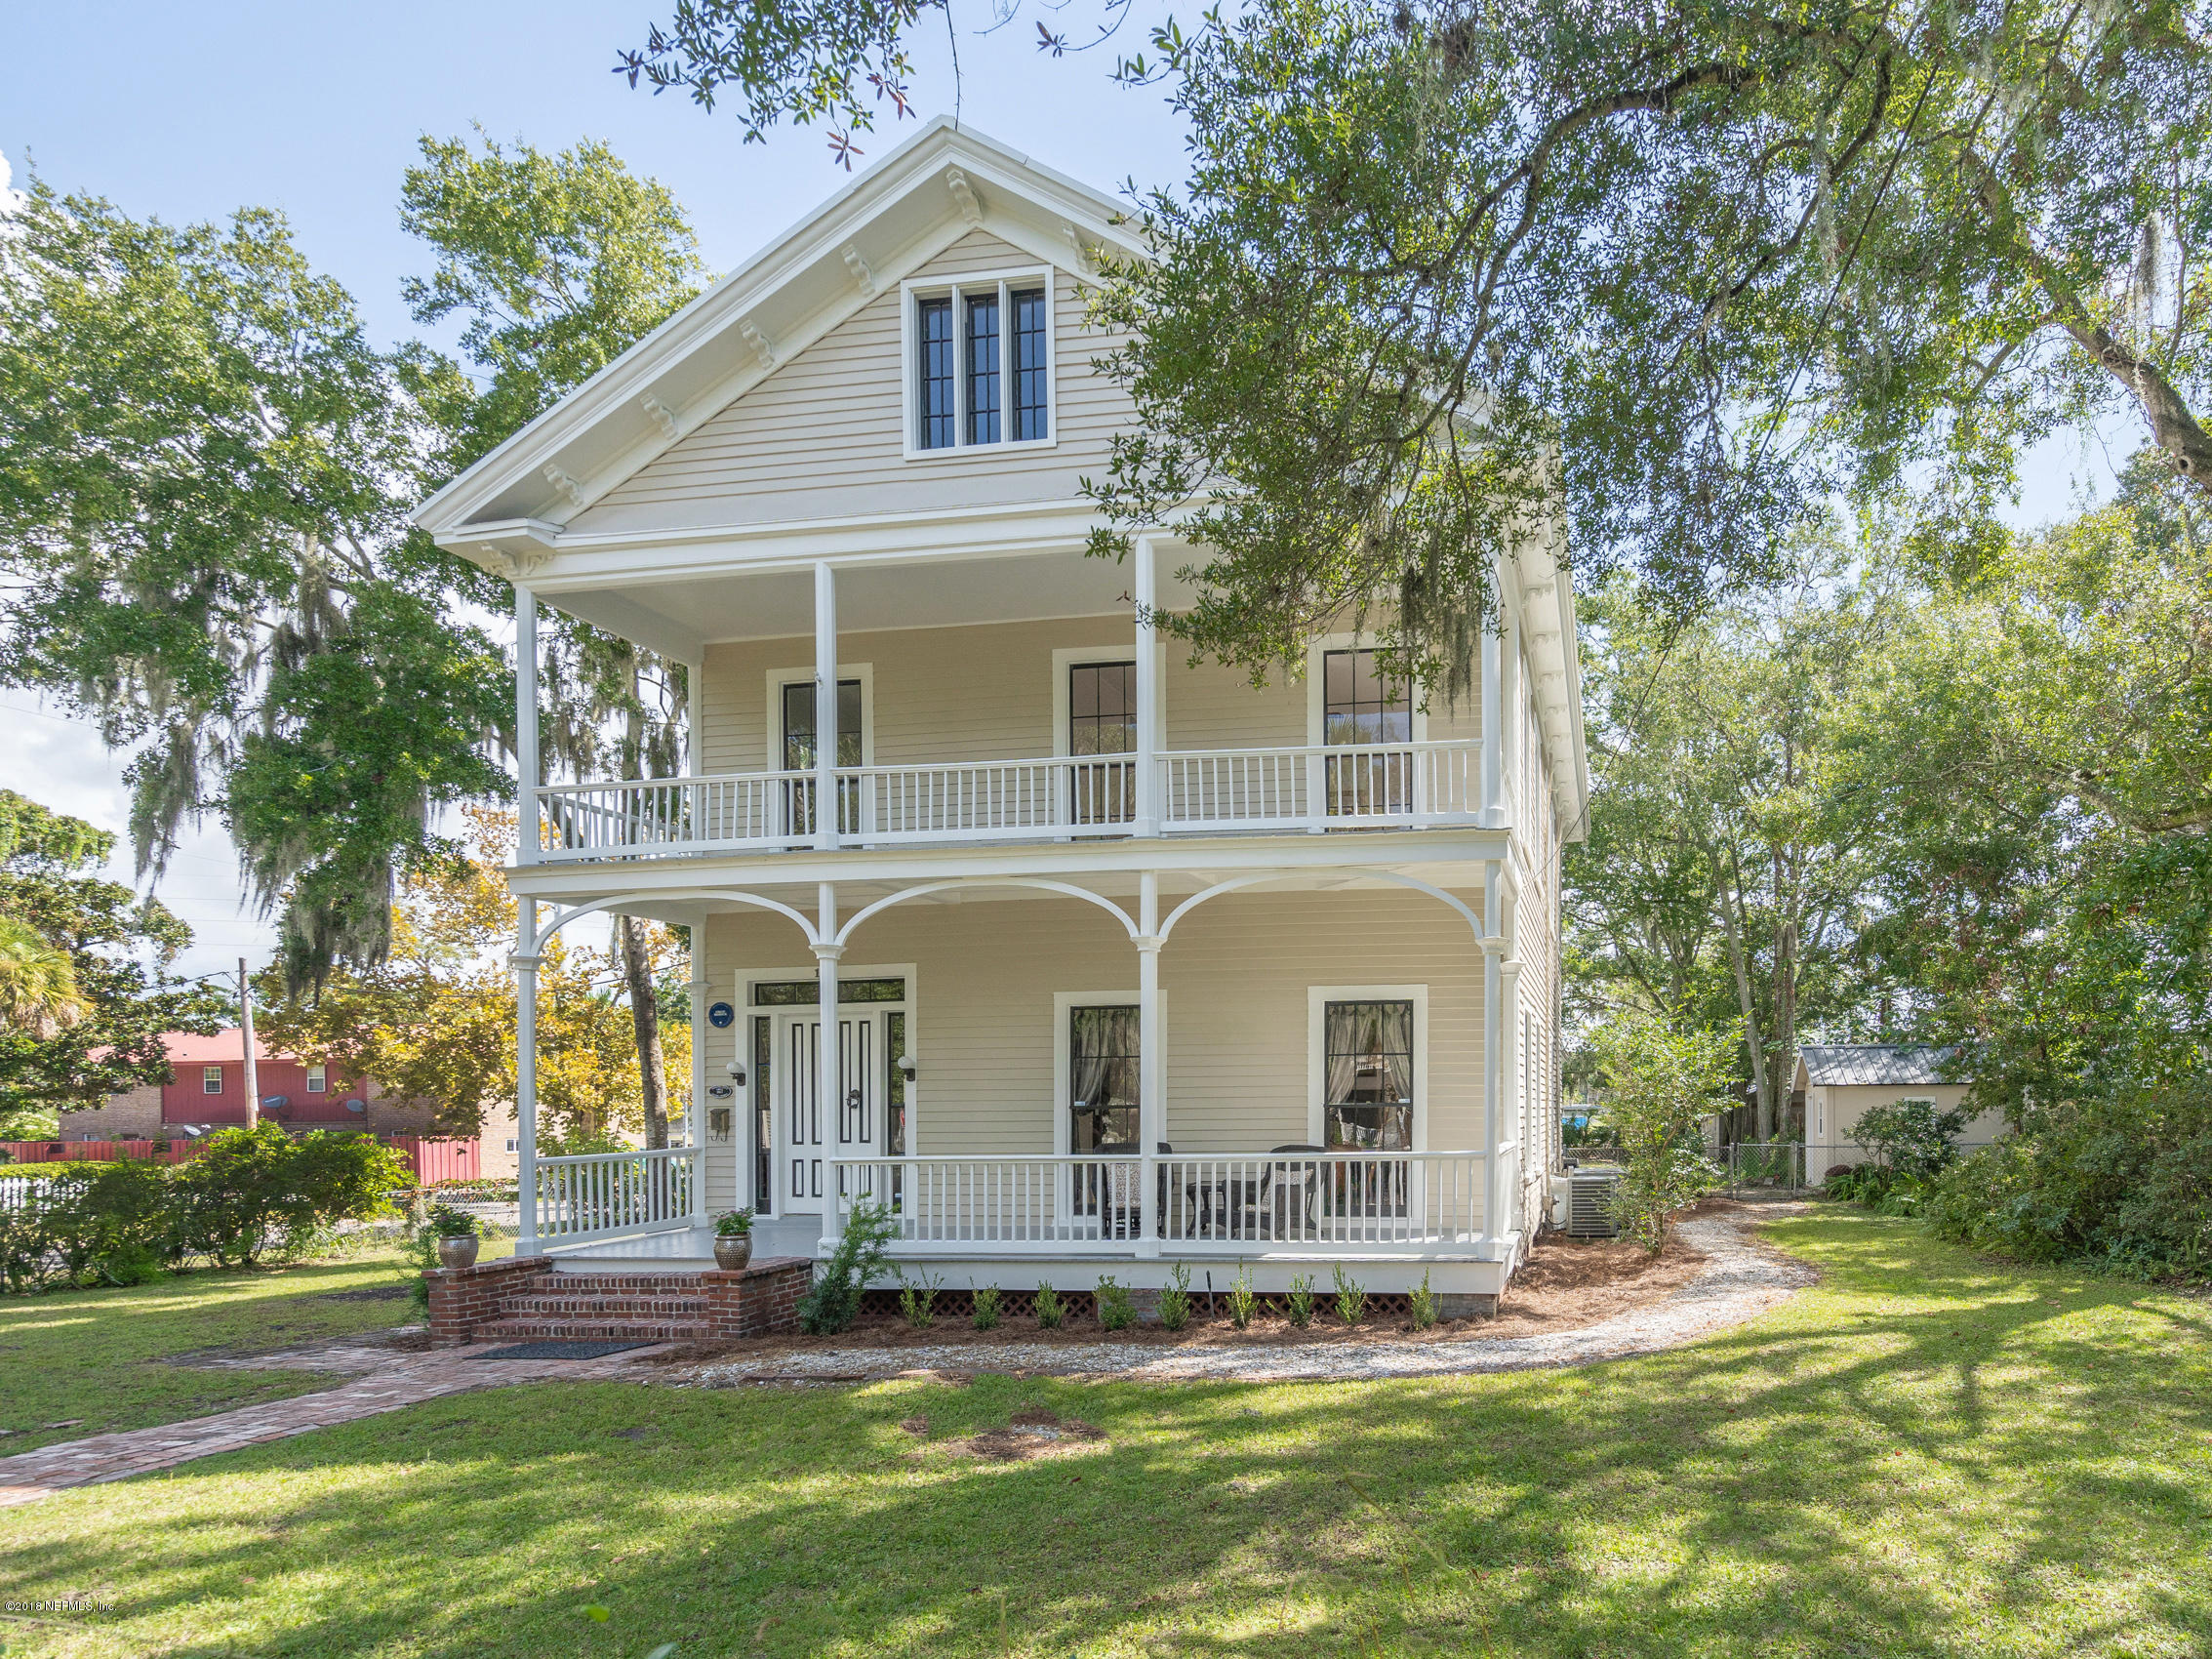 102 10TH, FERNANDINA BEACH, FLORIDA 32034, 4 Bedrooms Bedrooms, ,3 BathroomsBathrooms,Residential - single family,For sale,10TH,964767